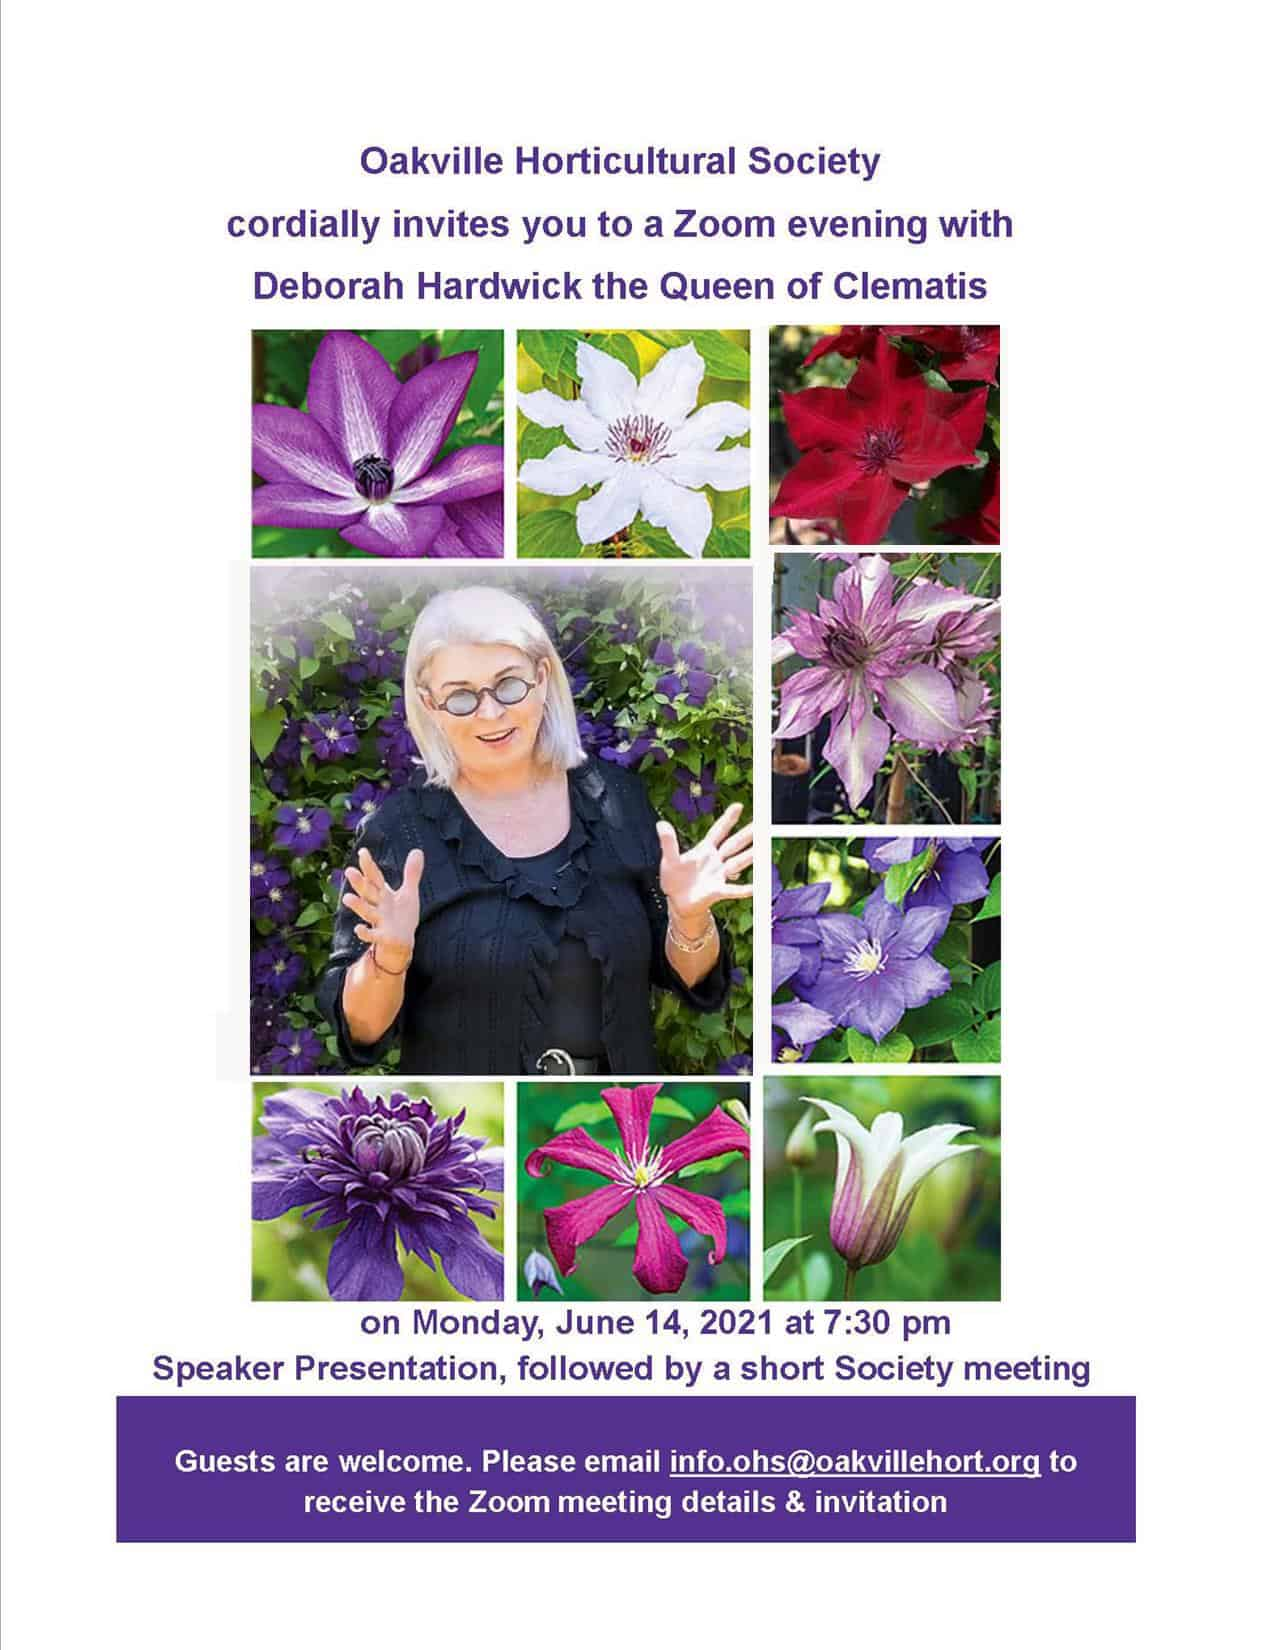 Deborah Hardwick: The diversity, myths and truths about clematis